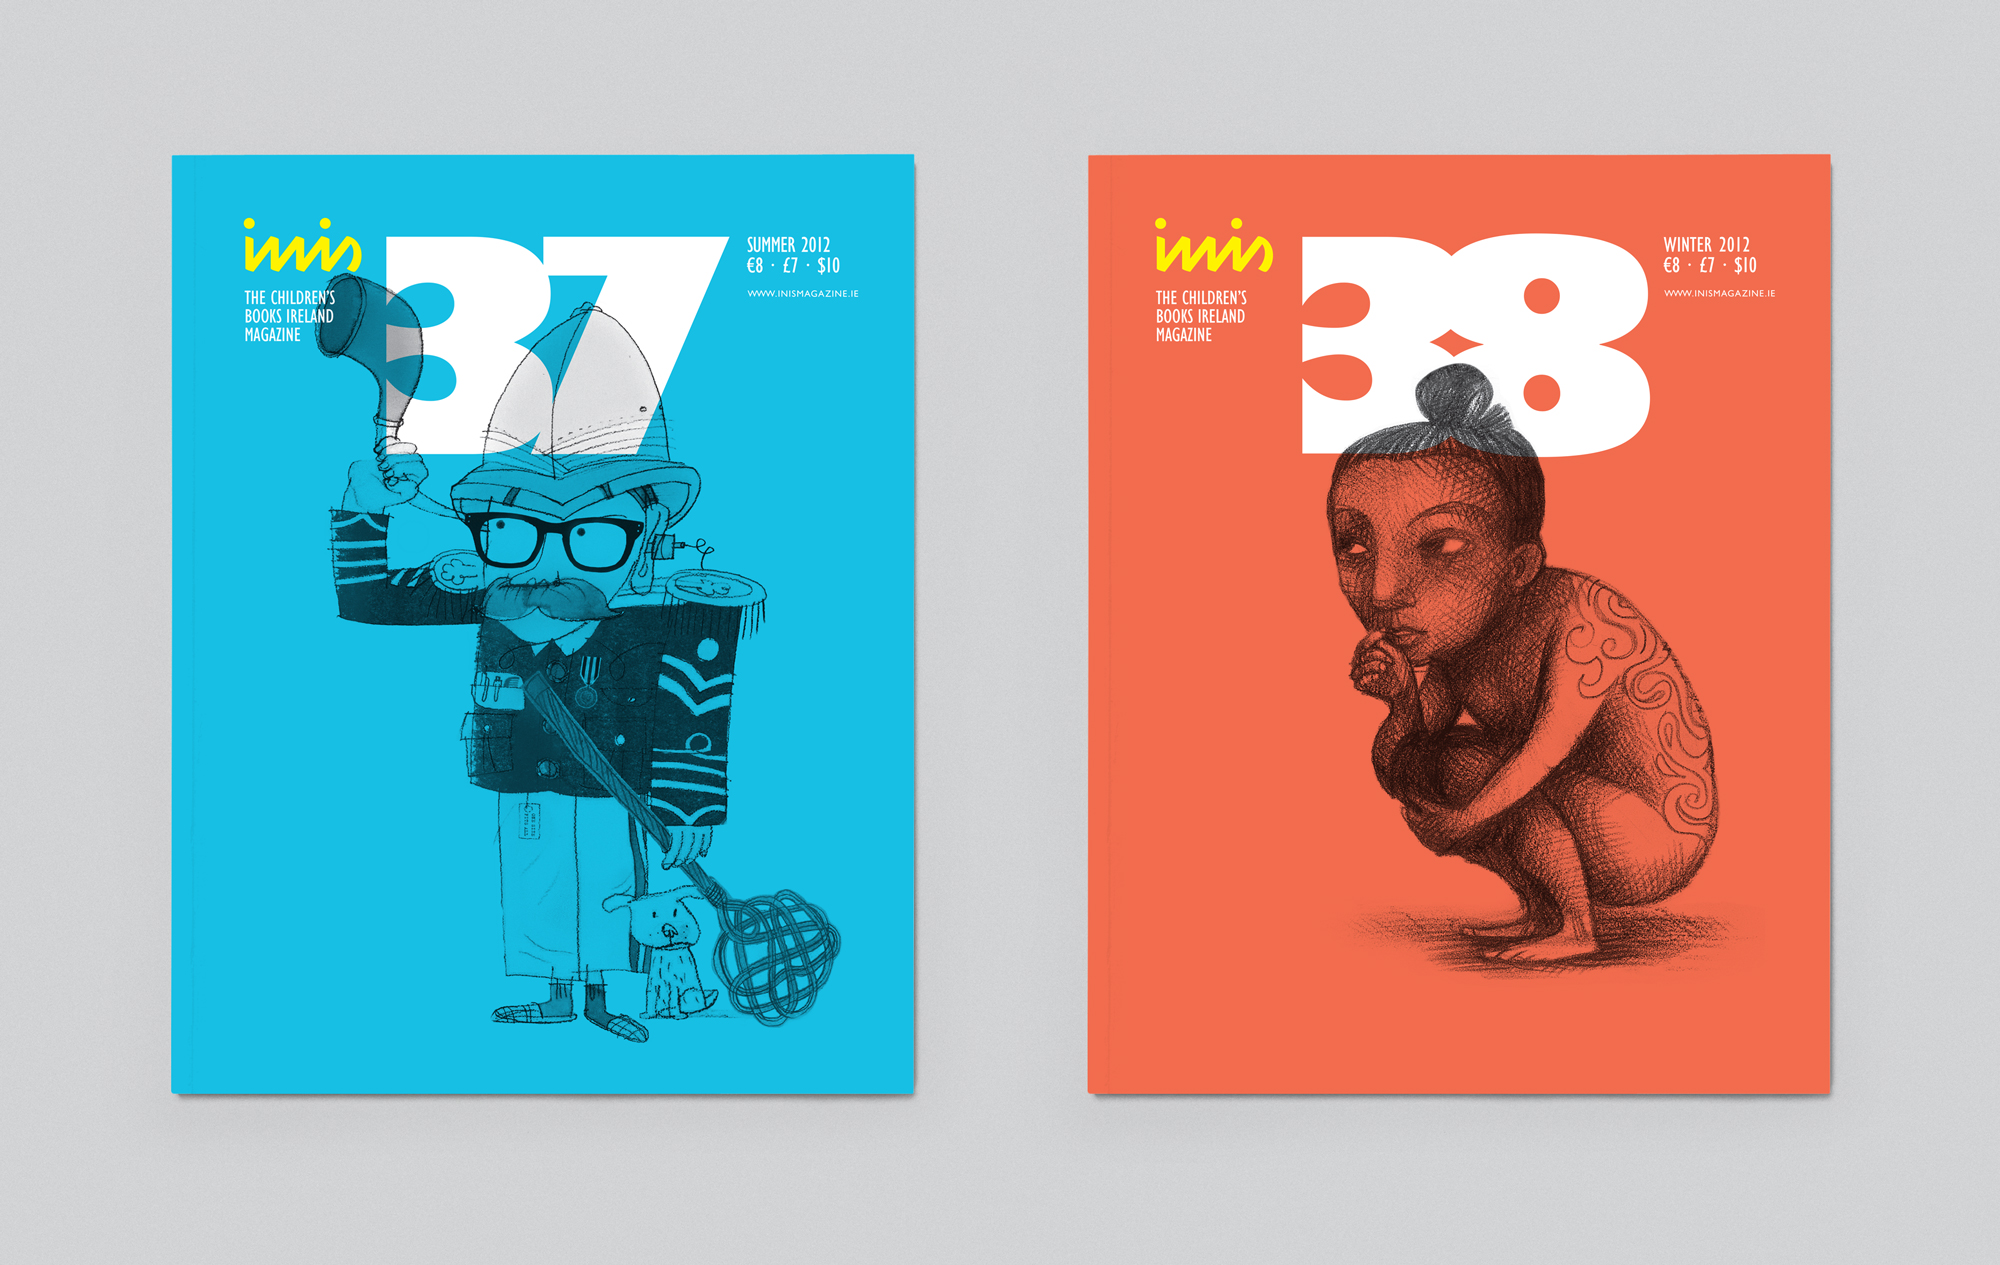 Cover image: Inis Magazine –Issues 37/38 (2012)